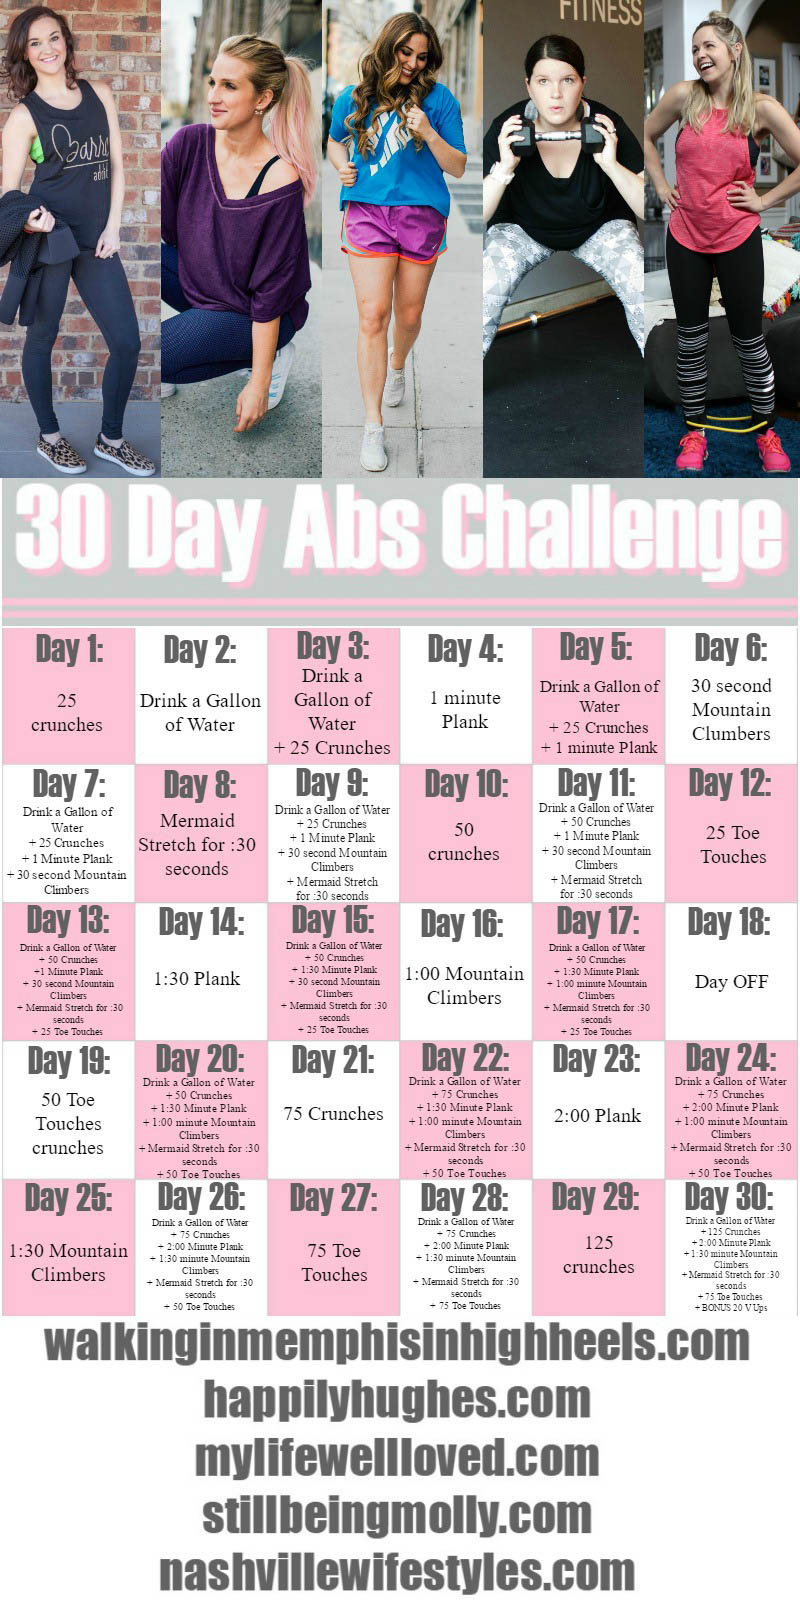 30 Day Ab Challenge Workout with CVS by fitness blogger Jessica of Happily Hughes